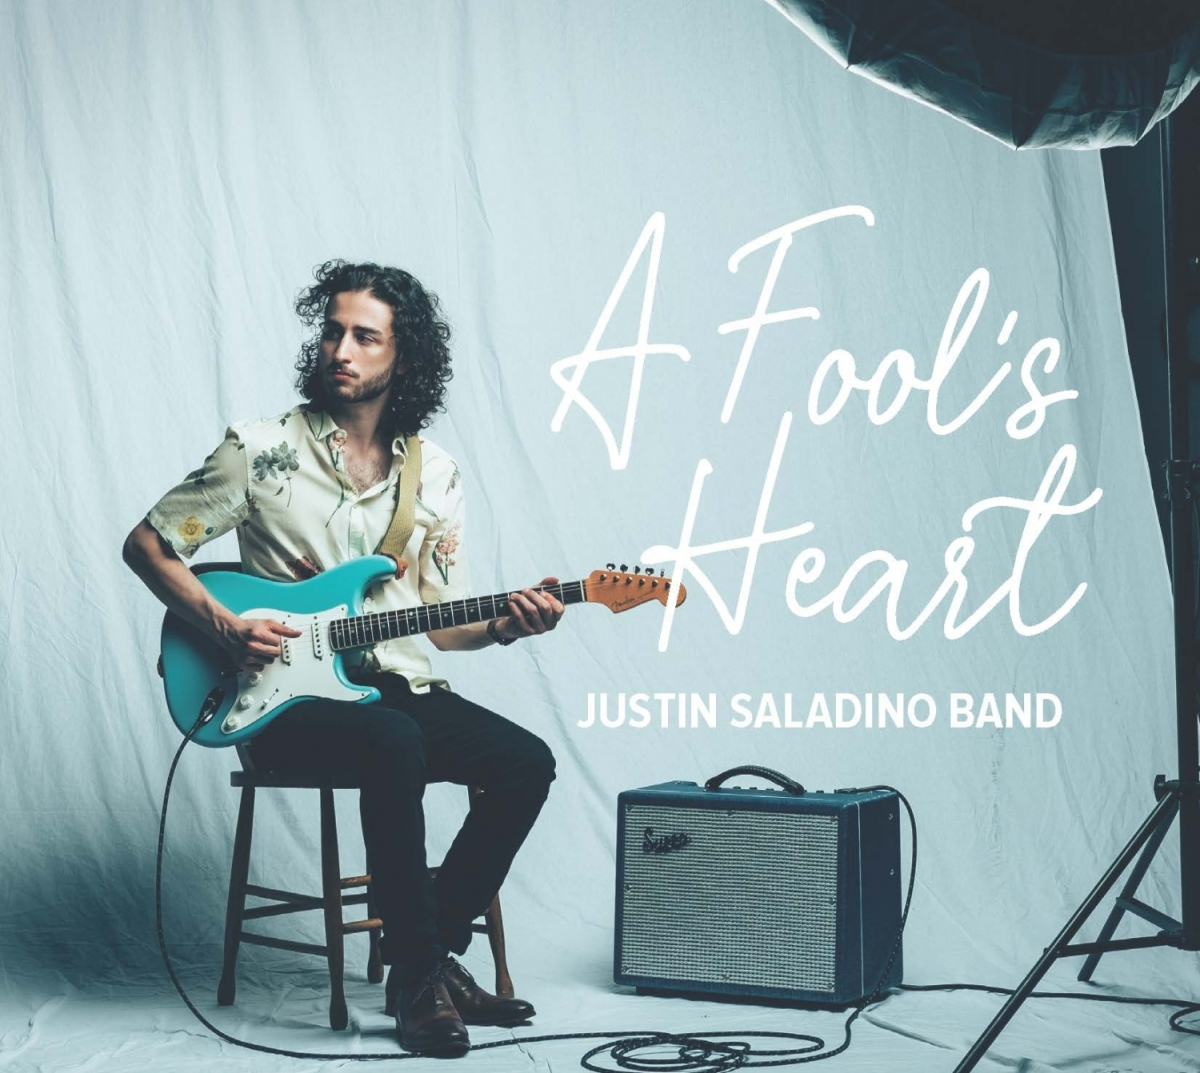 Rick Keene Music Scene – Justin Saladino is Brilliant with Latest Album 'A Fool's Heart'